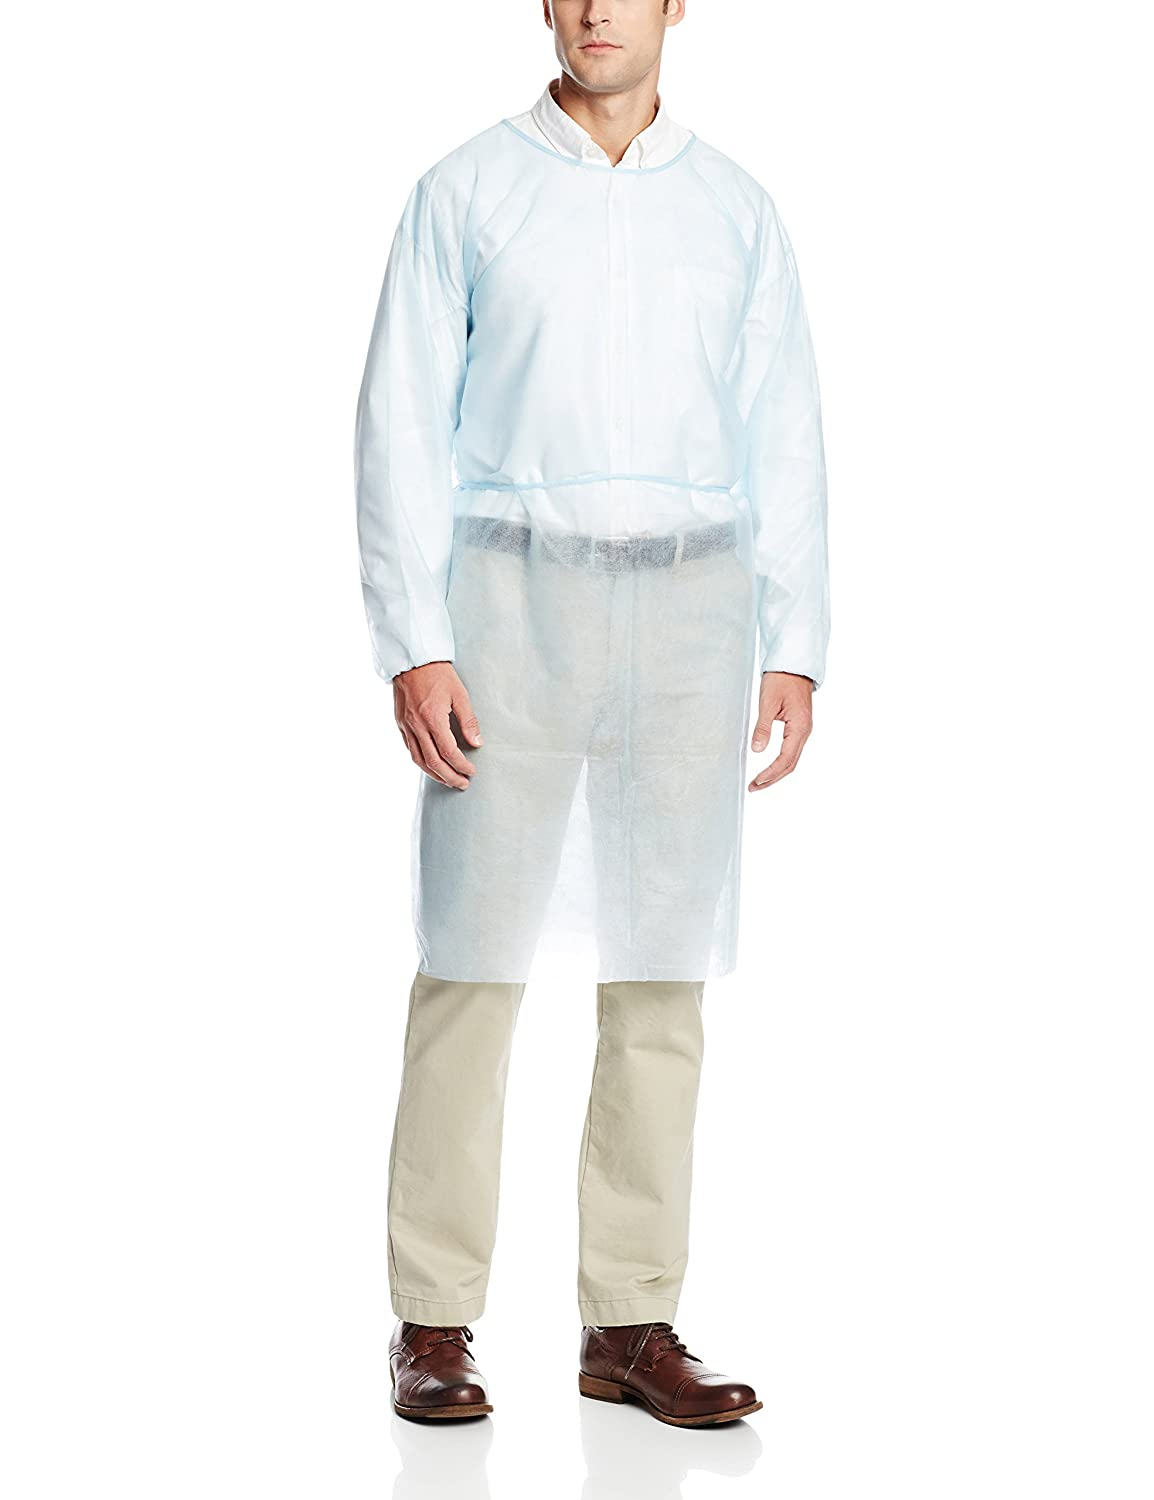 Protective Isolation Gown Clothing Overalls Isolation Suit Set Disposable Antistatic Dust Medical Splash Resistant